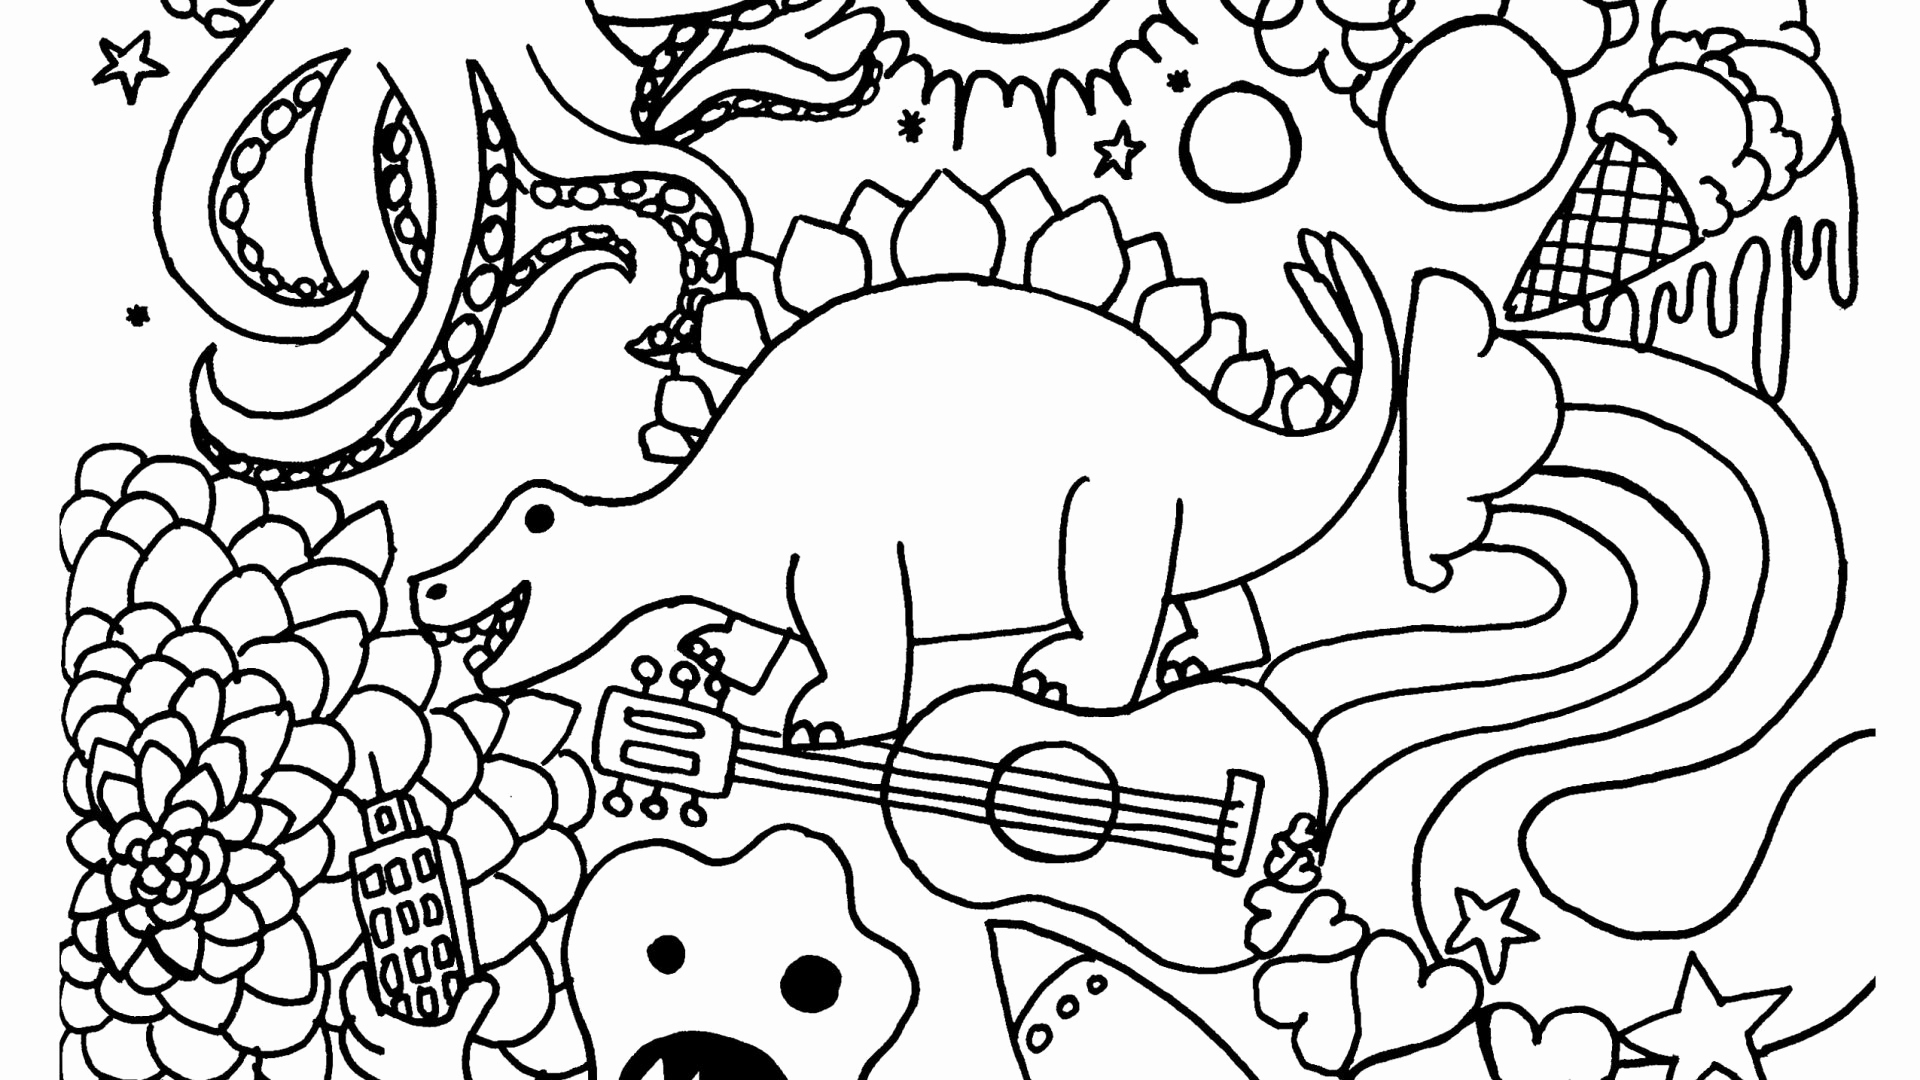 1920x1080 Grade Coloring Pages Beautiful Grade Coloring Pages